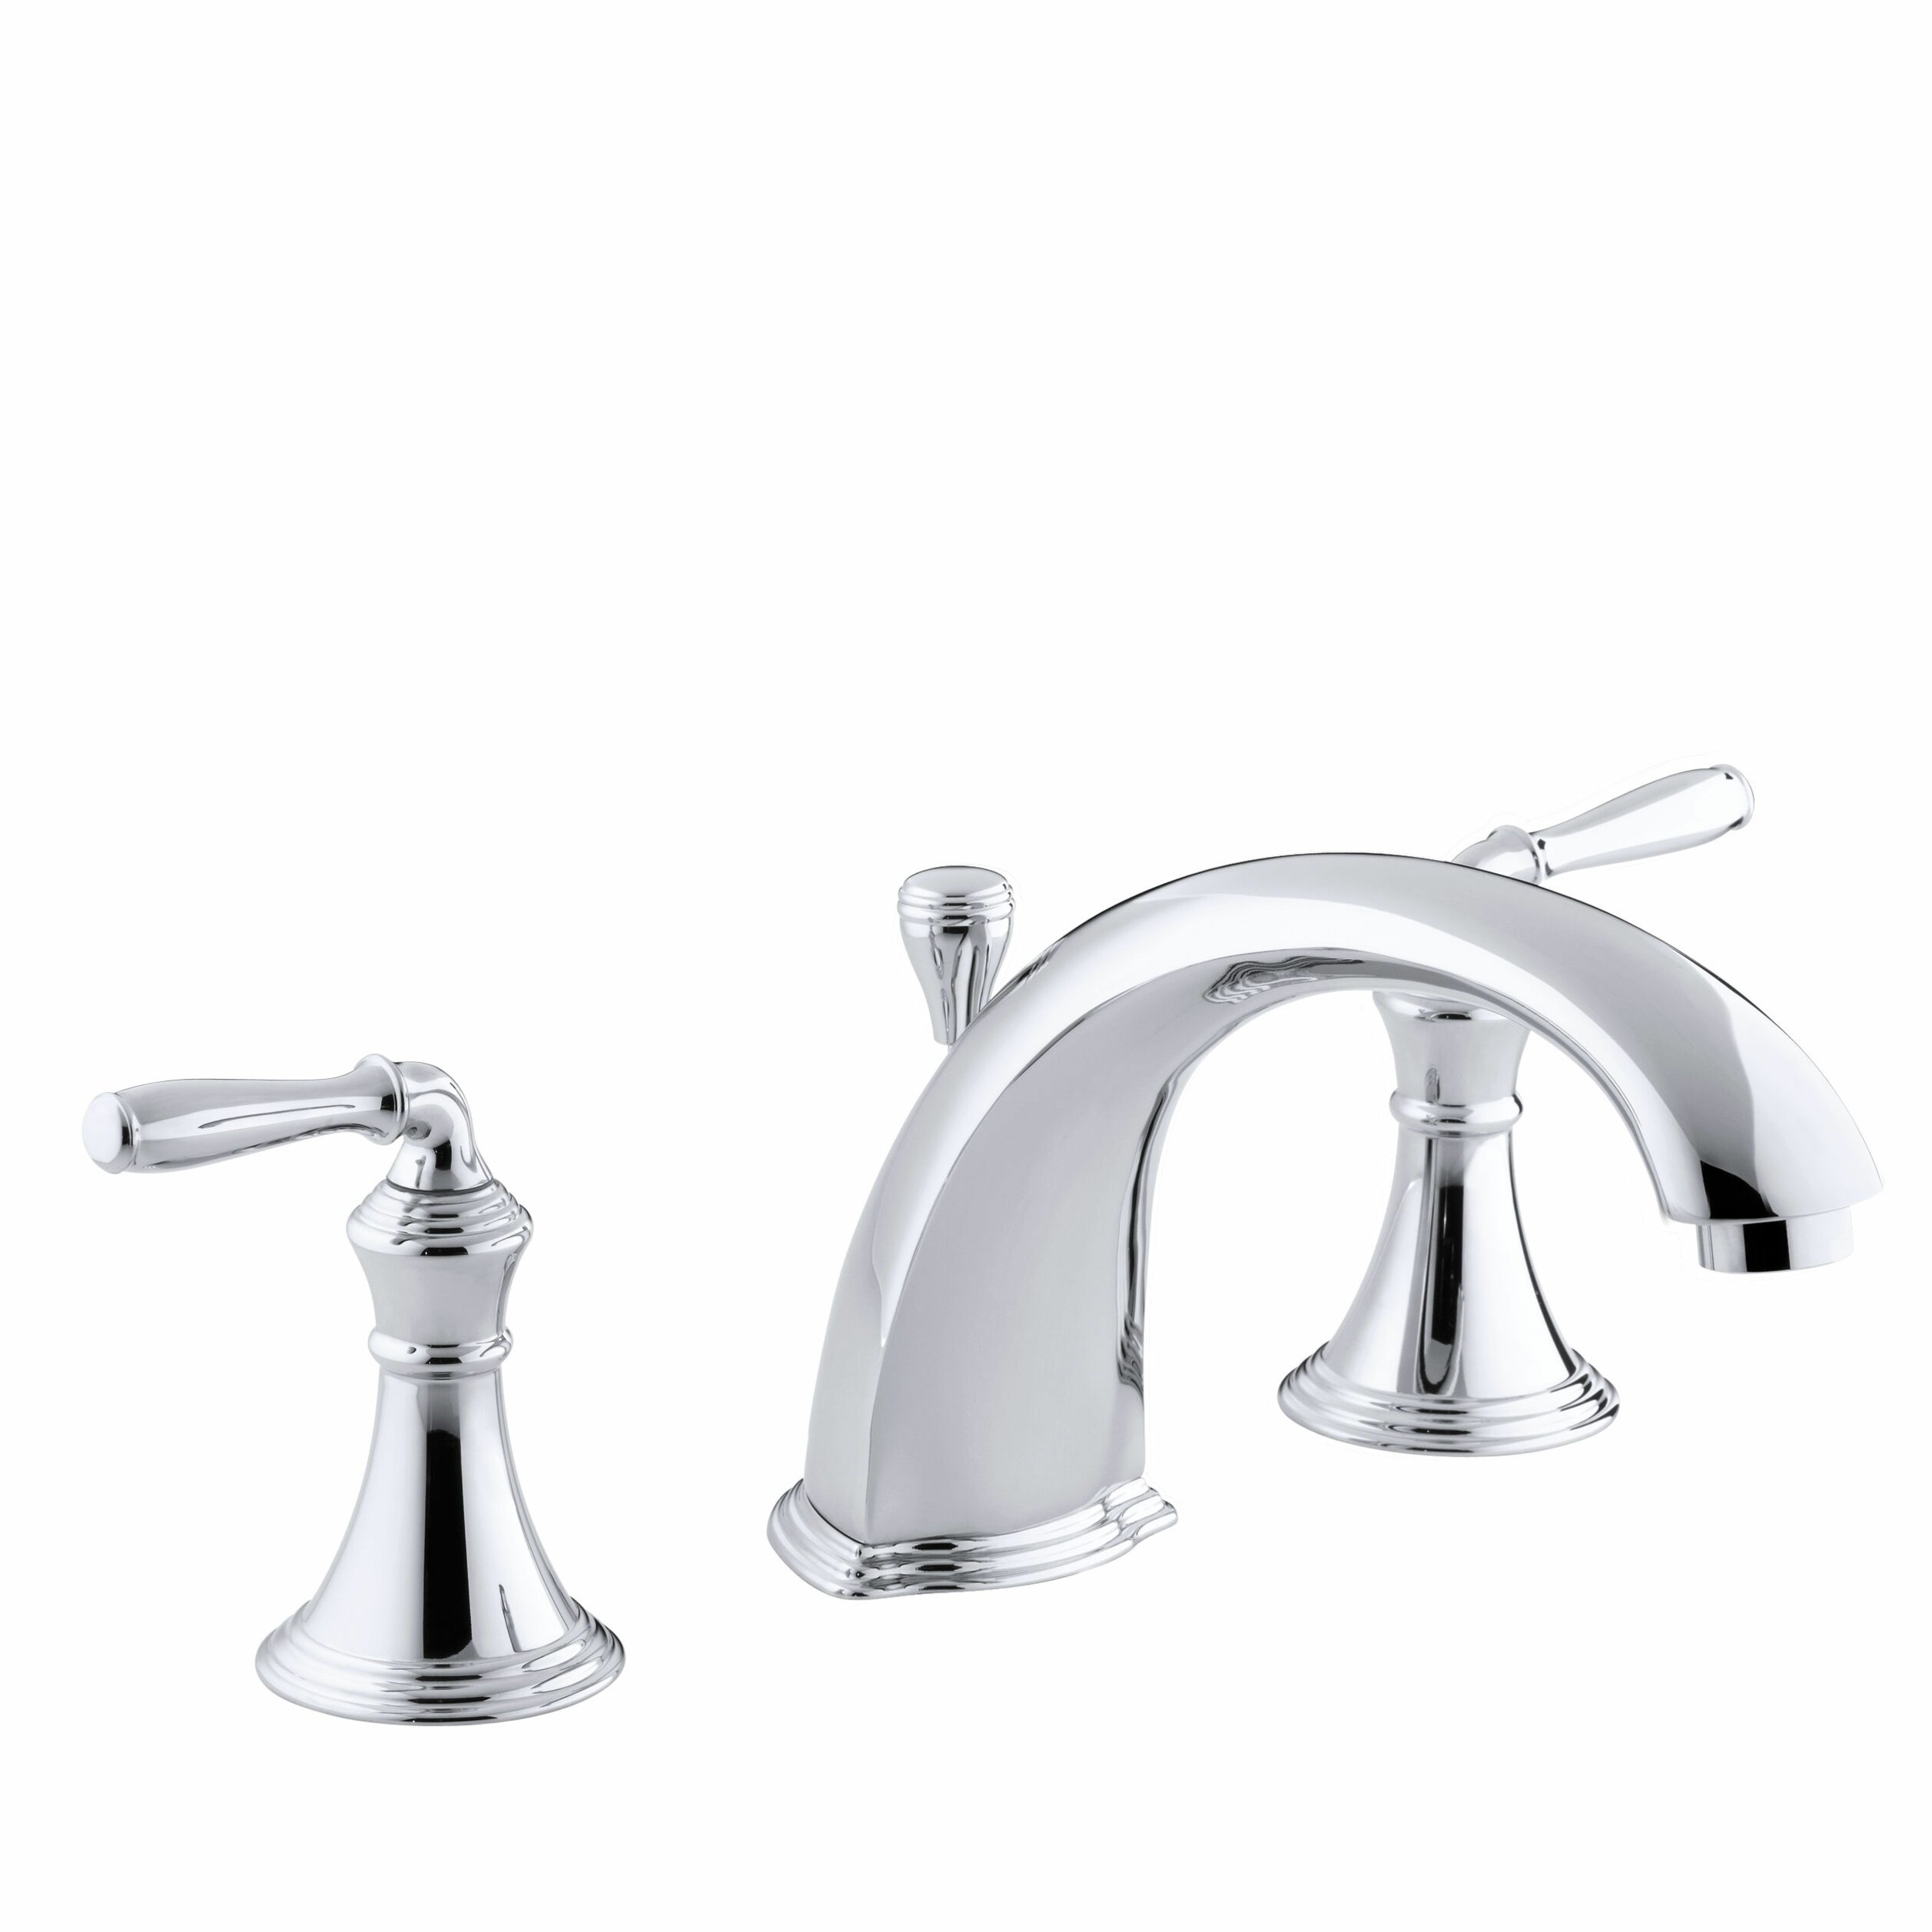 Kohler devonshire deck rim mount bath faucet trim for high flow valve with 8 15 16 diverter - Kohler devonshire reviews ...